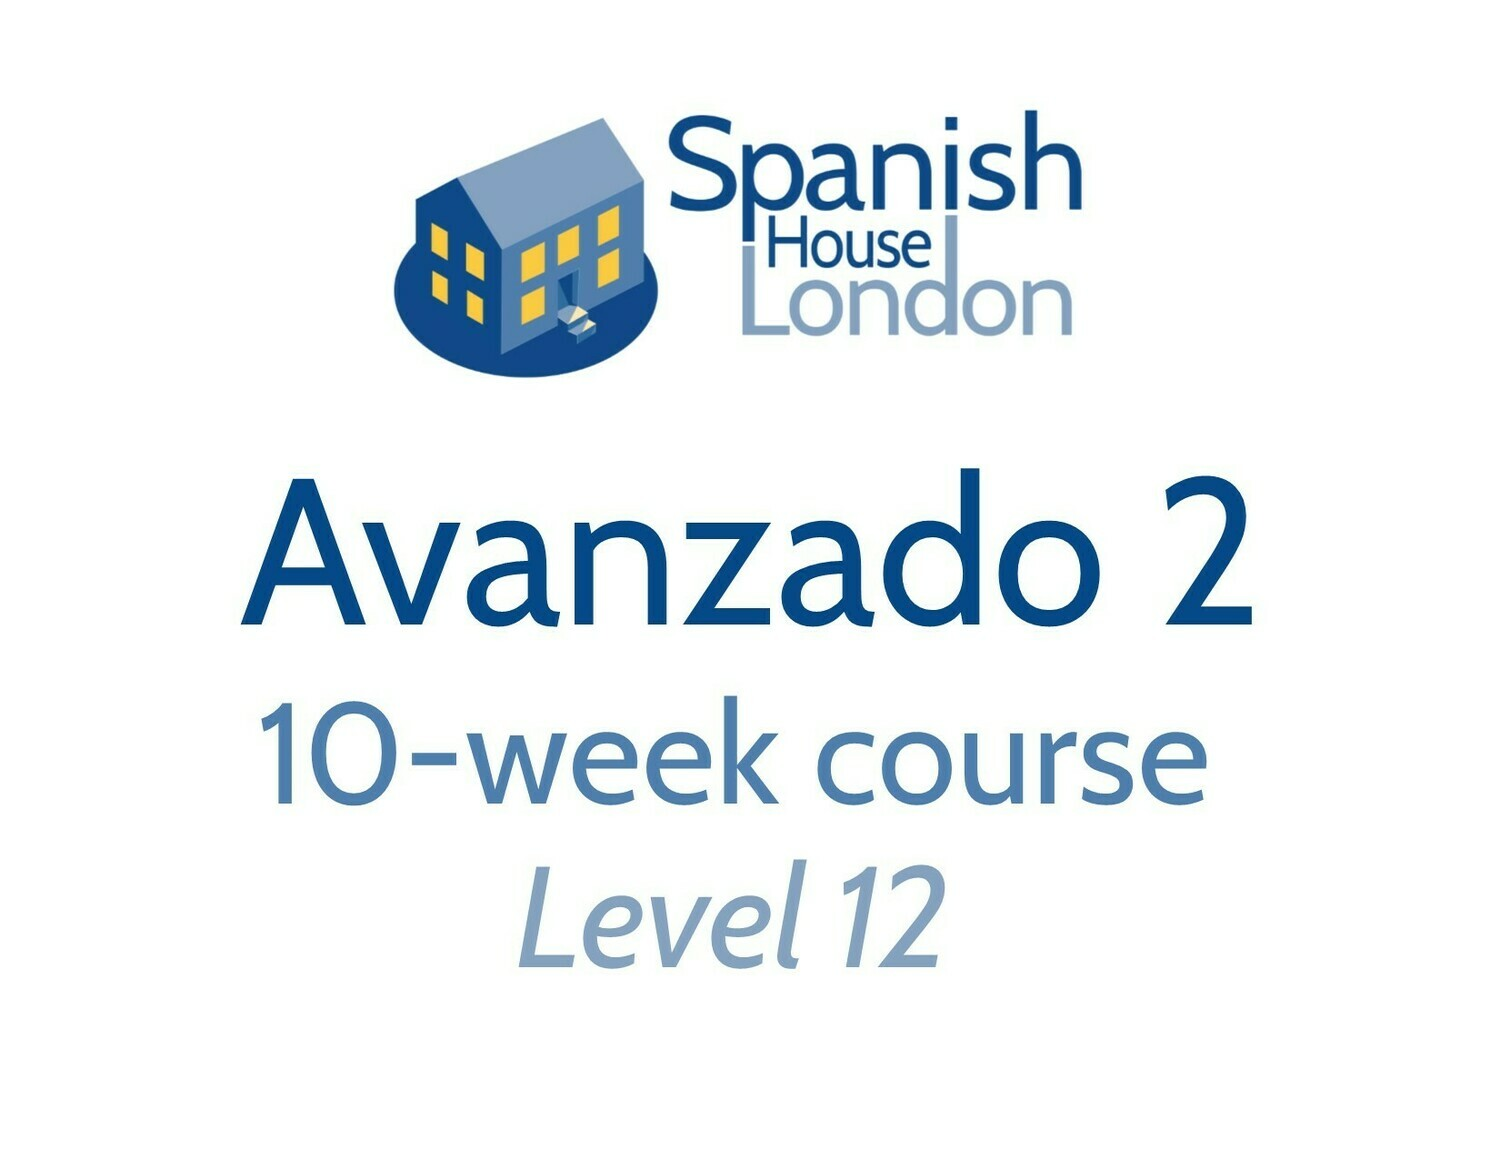 Avanzado 2 Course starting on 11th August at 6pm